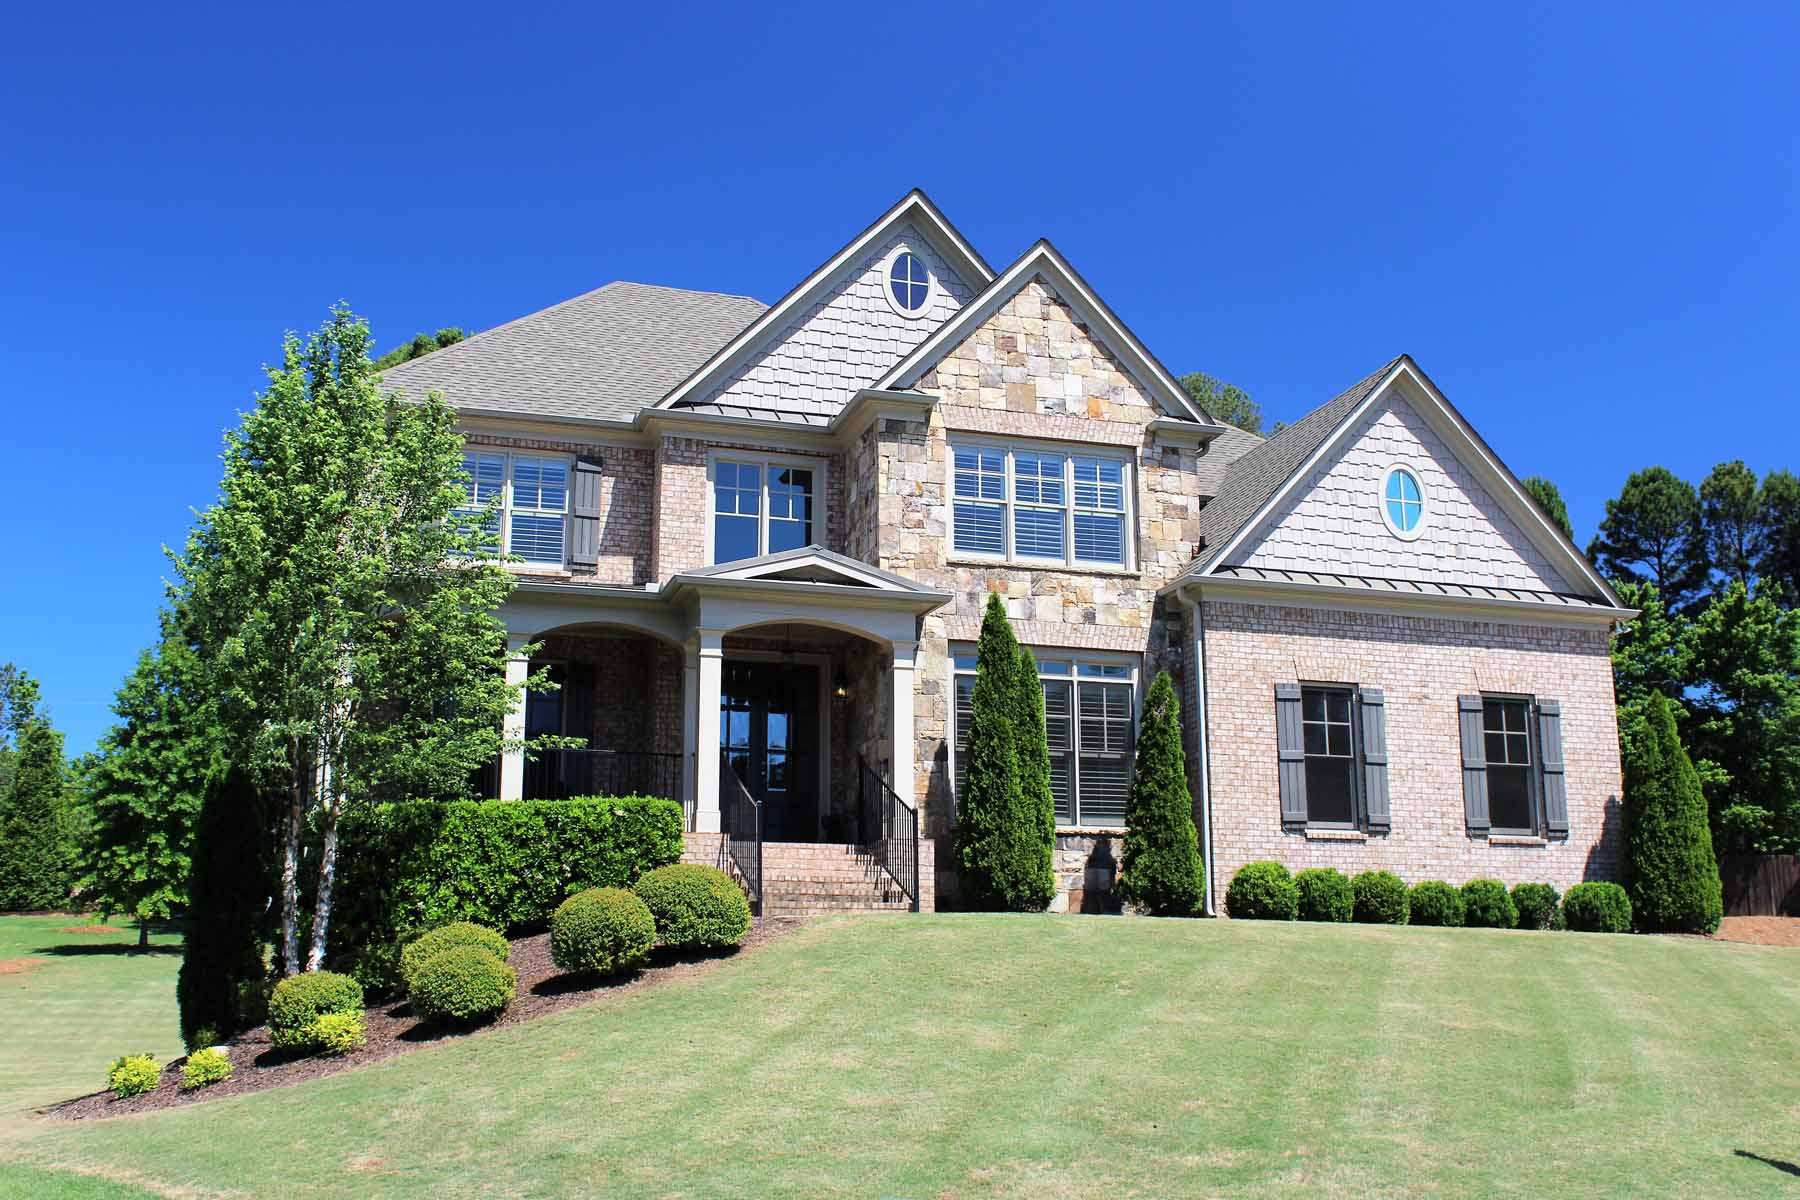 Villa per Vendita alle ore Desirable Executive Living In North Atlanta 1055 Cascade Run Court Suwanee, Georgia, 30024 Stati Uniti